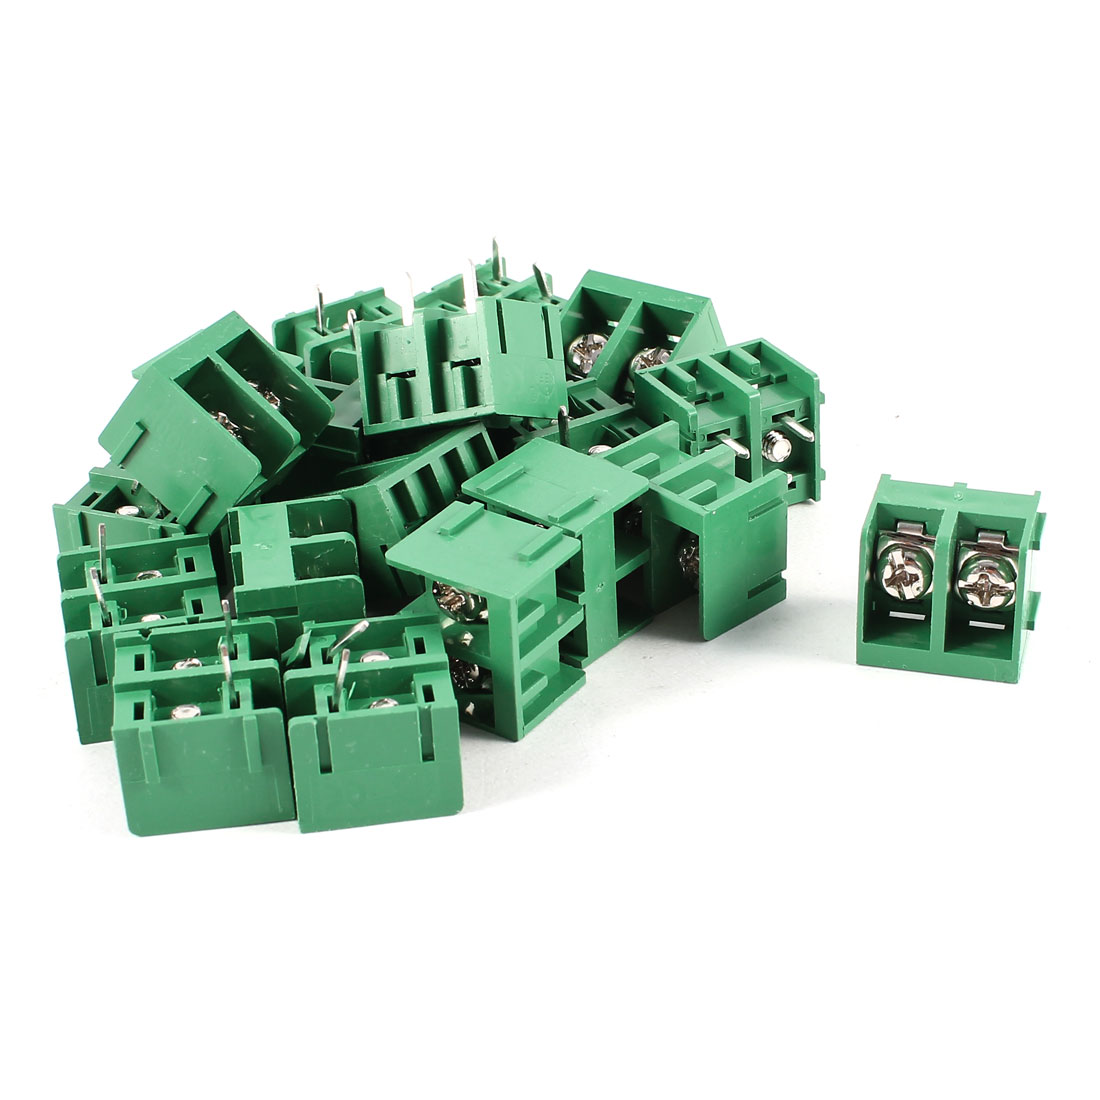 20 Pcs Green HB9500-2P 2 Position 2Pin PCB Mount 9.5mm Pitch Screw Terminal Barrier Blocks 300V 30A